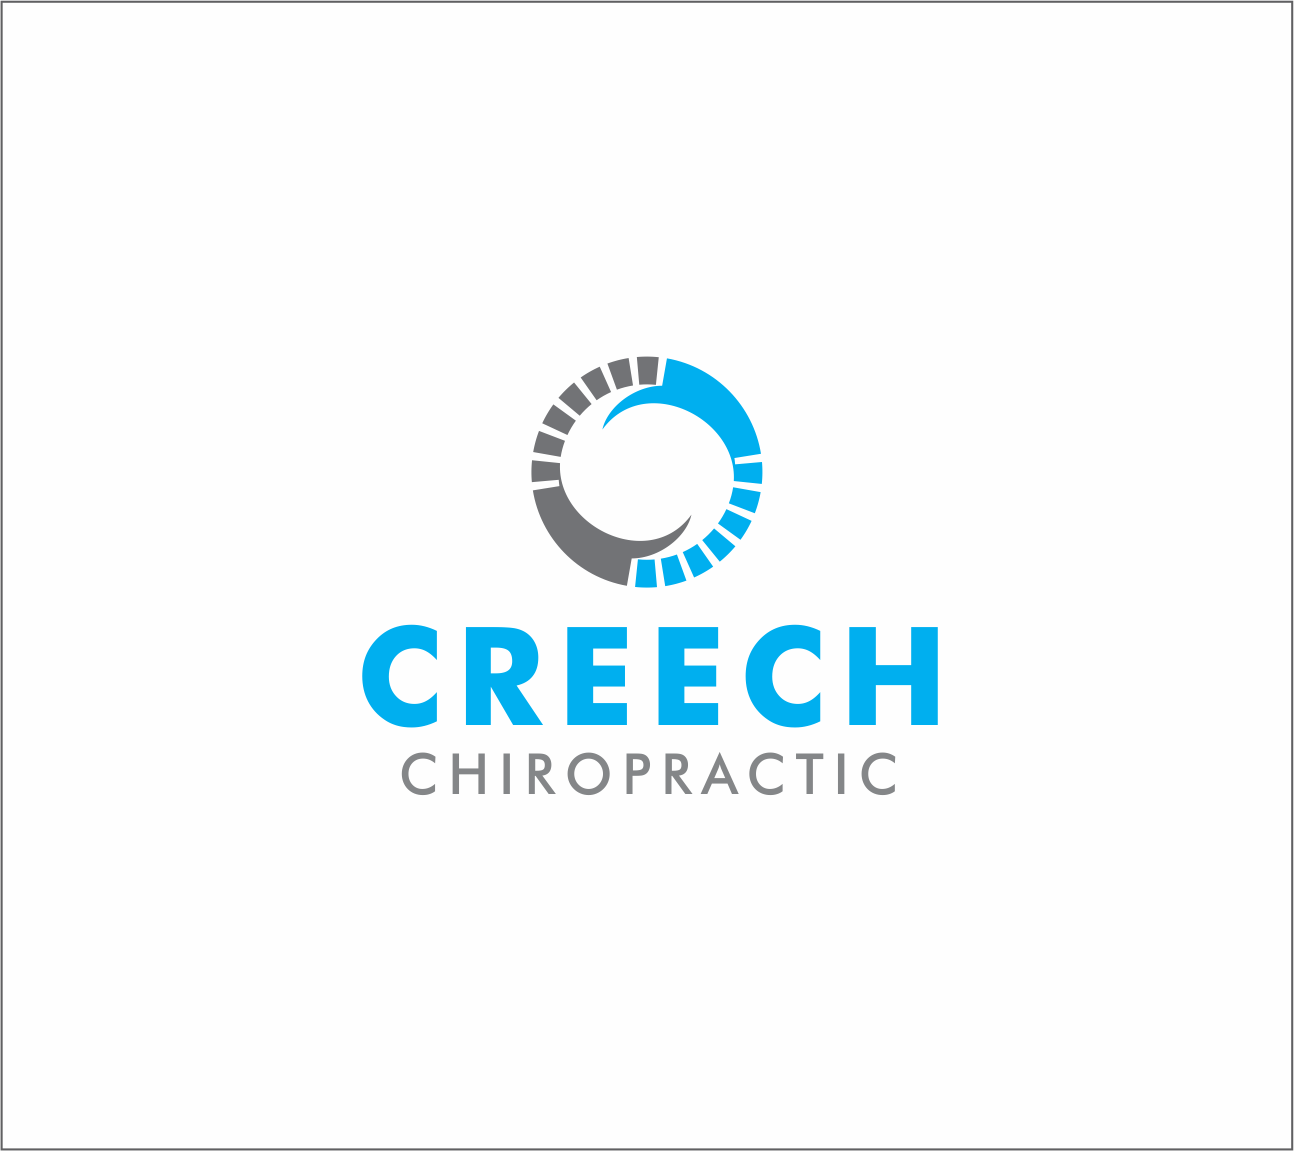 Logo Design by Armada Jamaluddin - Entry No. 54 in the Logo Design Contest Imaginative Logo Design for Creech Chiropractic.